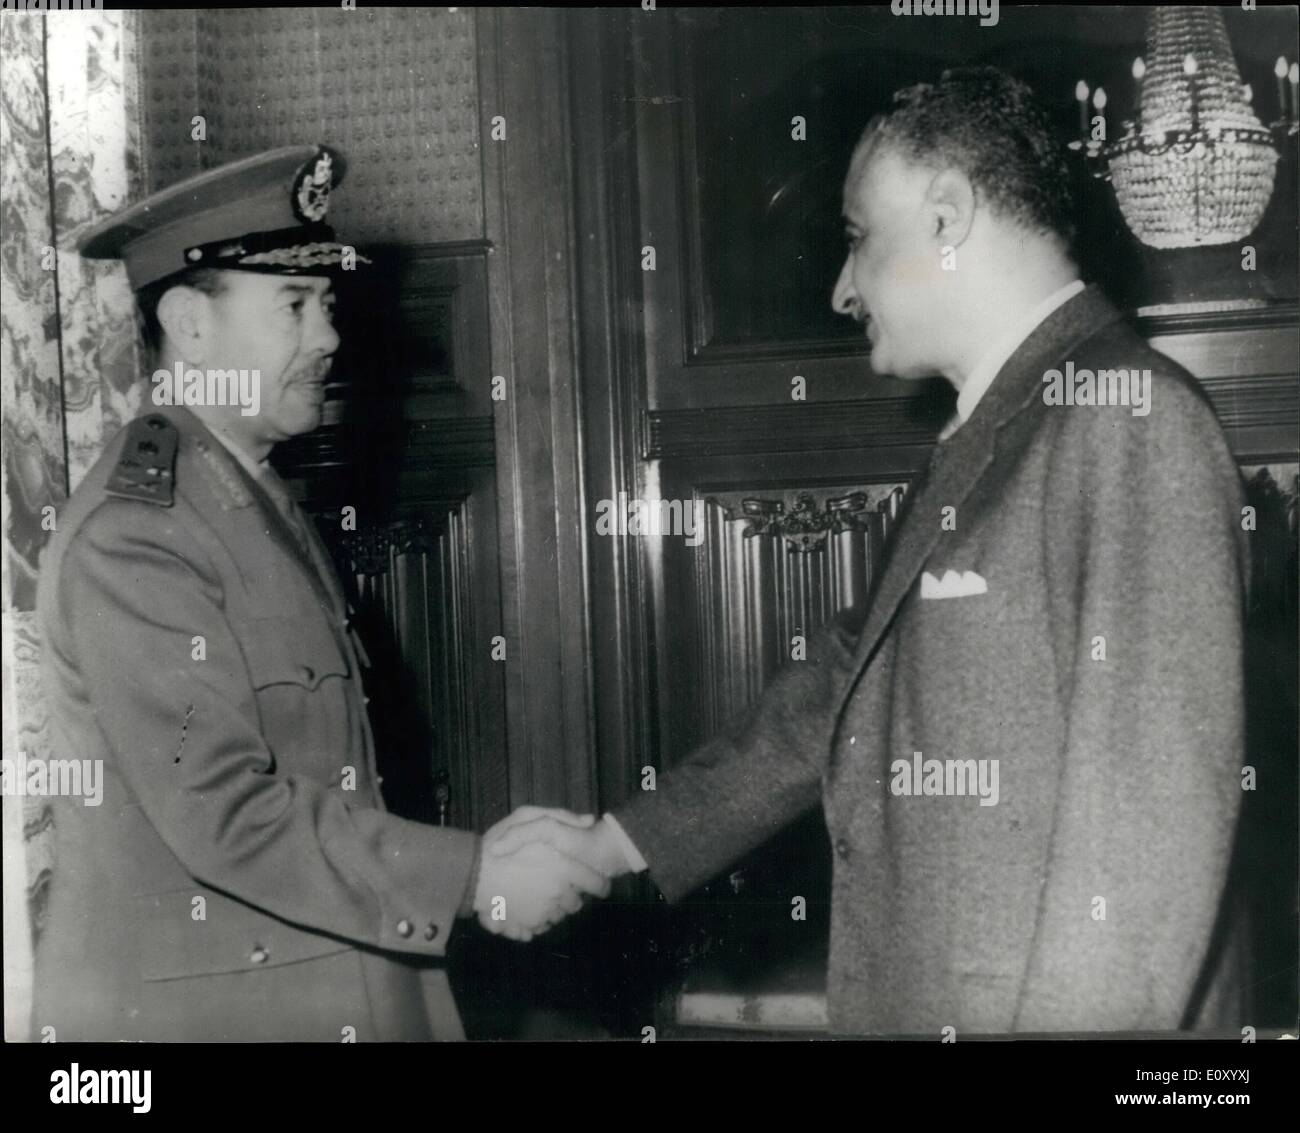 Feb. 02, 1968 - New U.A.R. war Minister sworn in: The New War Minister and Commander in chief of the UAR armed forces, - Stock Image